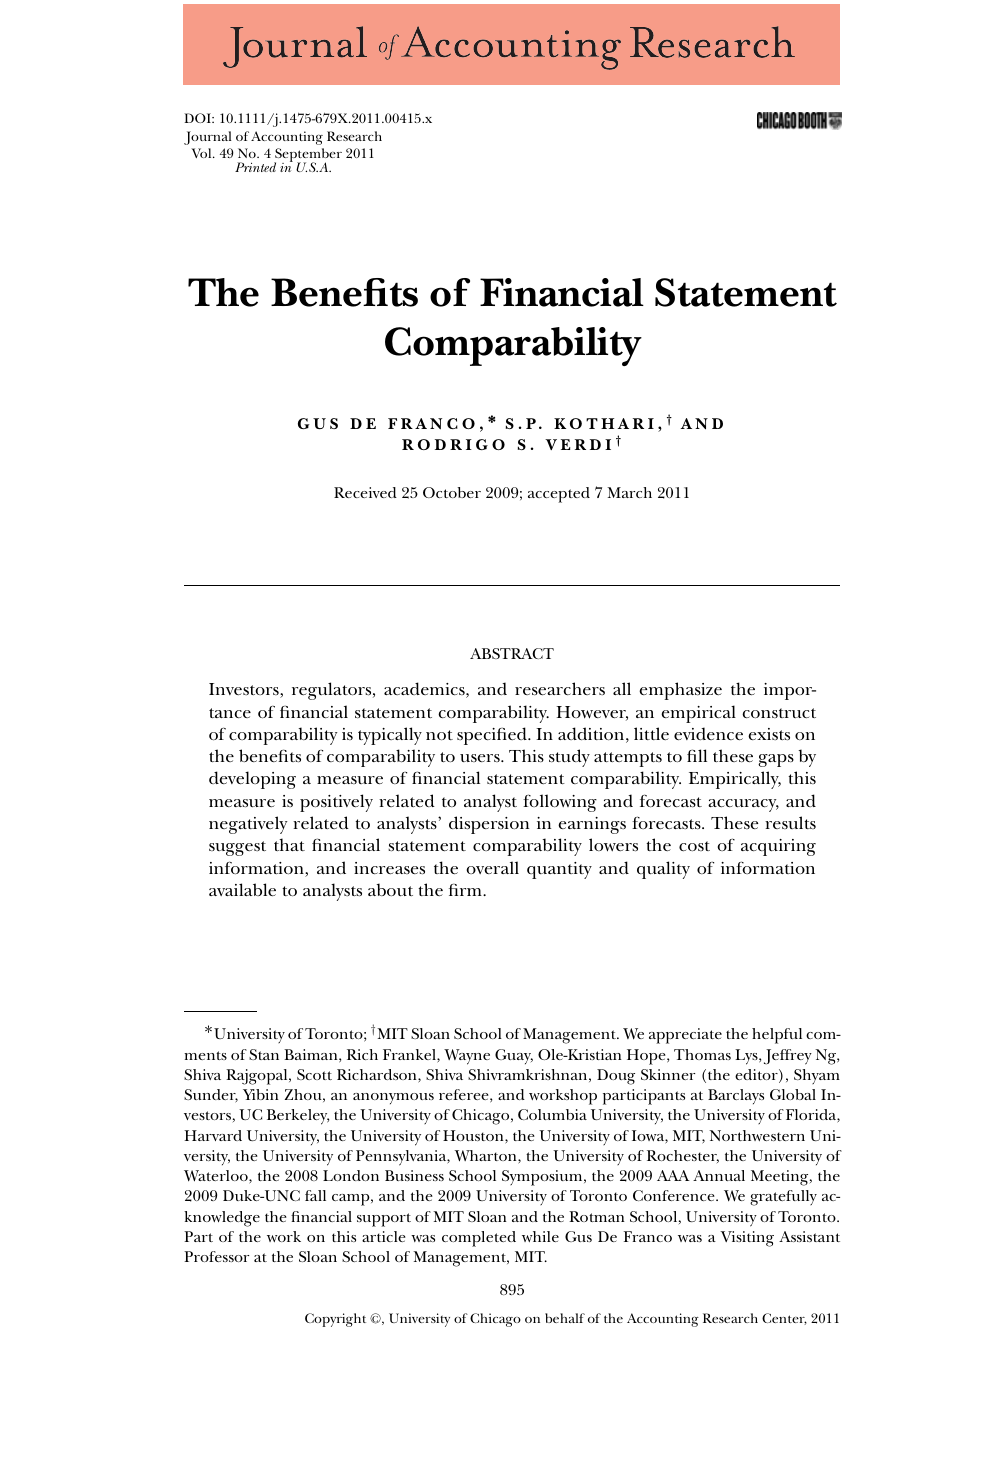 The Benefits of Financial Statement Comparability – topic of